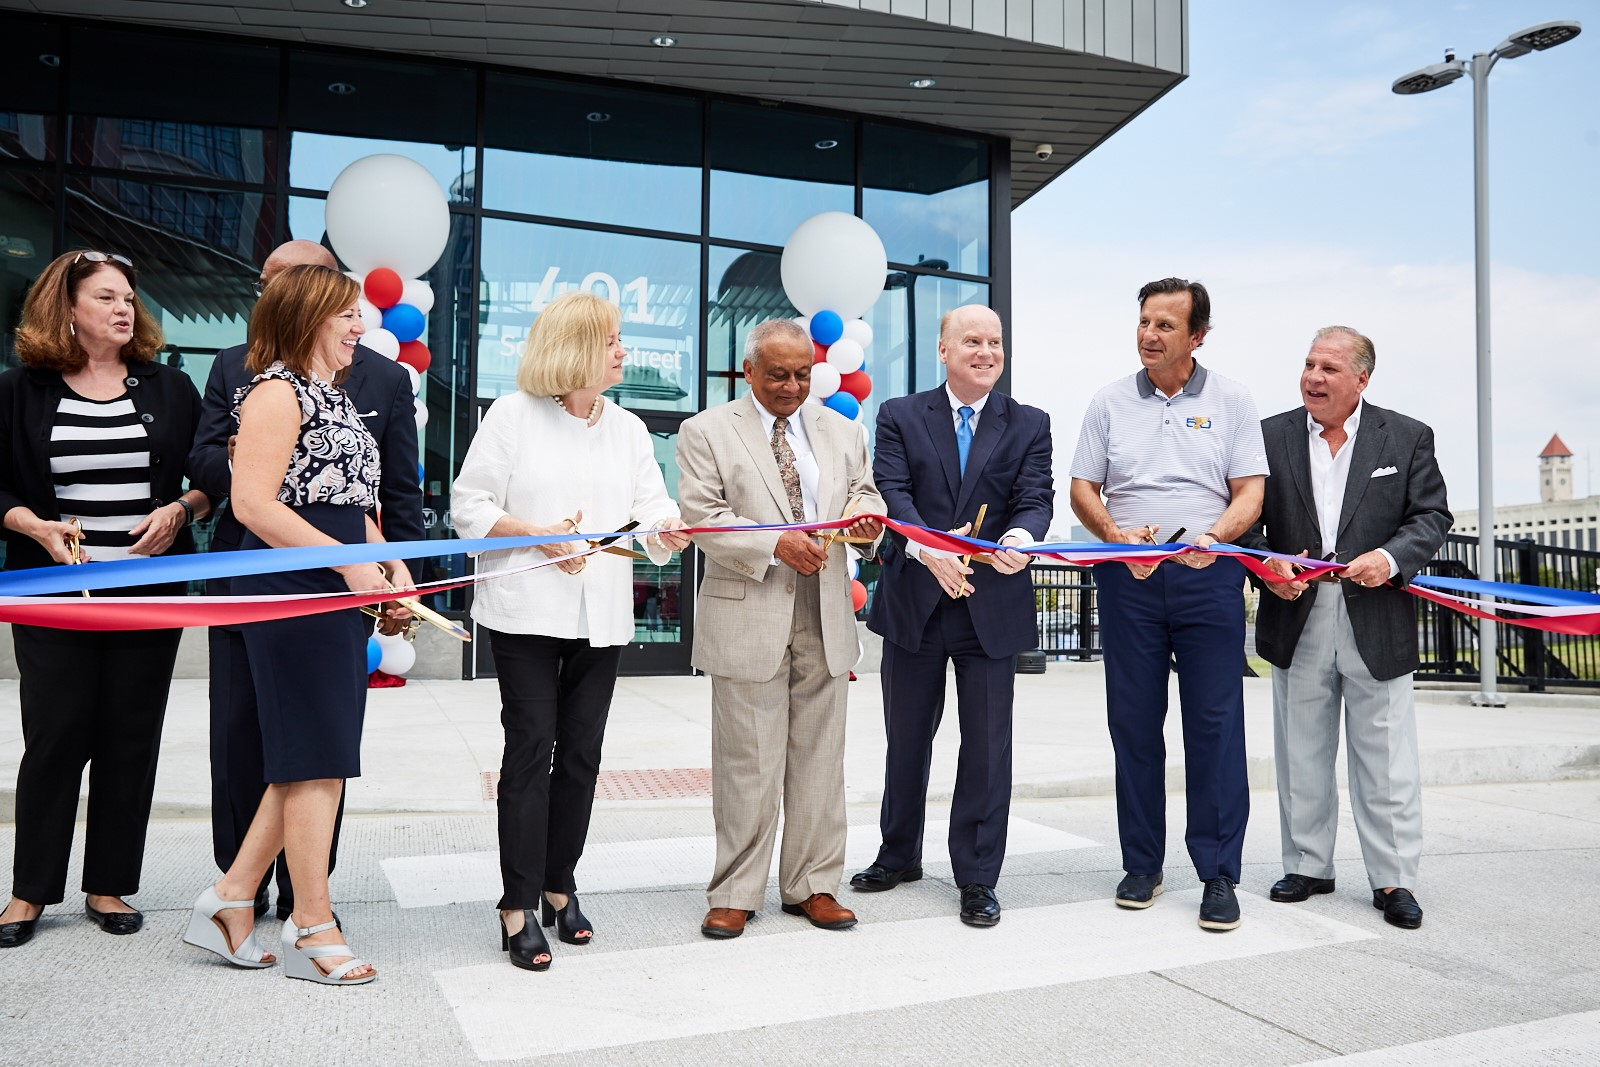 MetroBus Service Returns to Newly Expanded  Civic Center Transit Center August 14